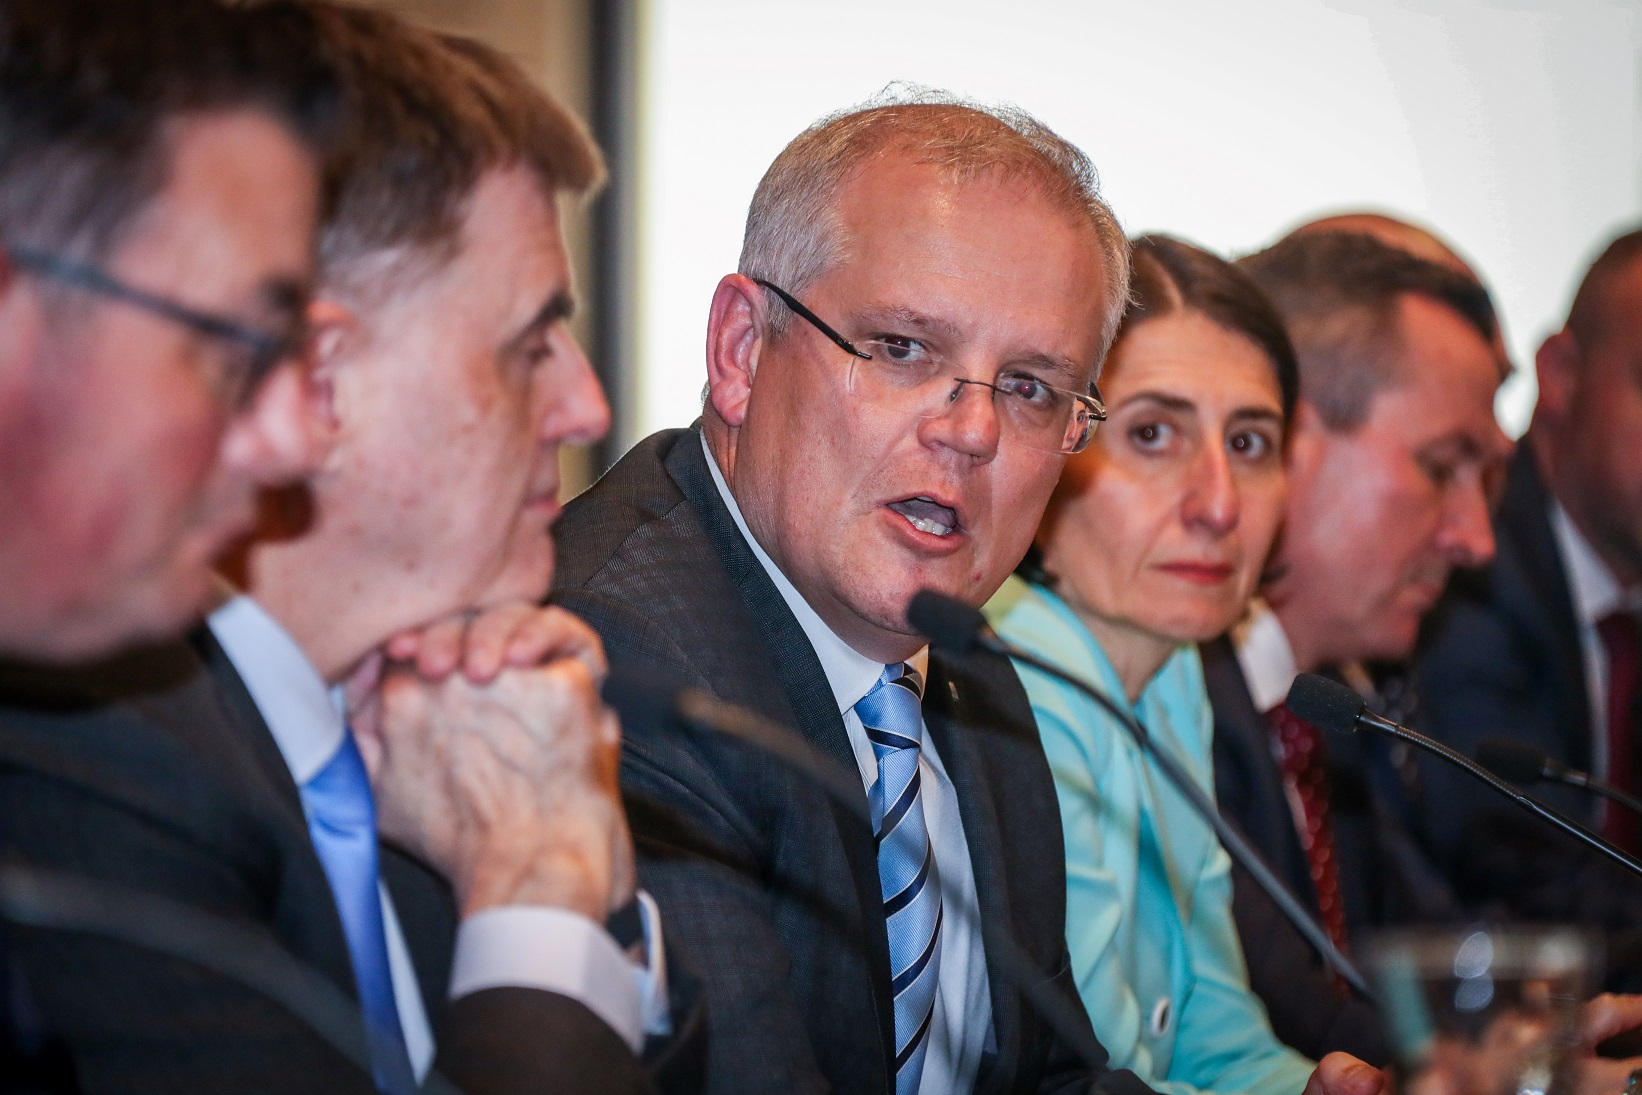 Australia bans non-residents from arrival: PM